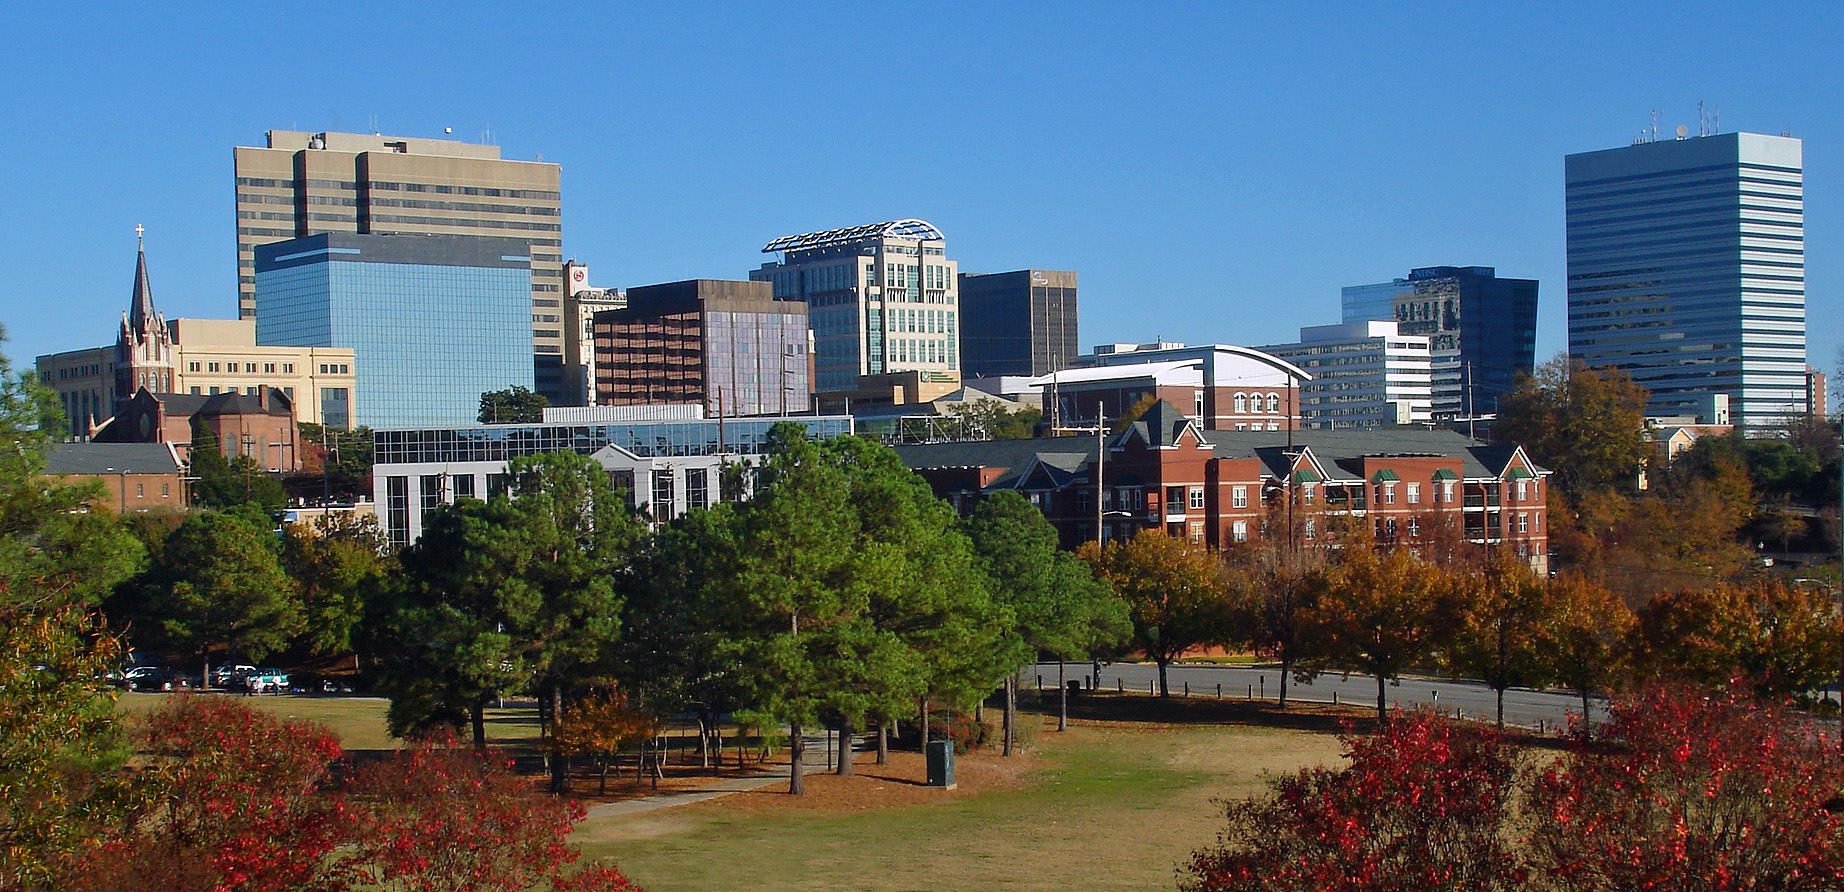 Columbia, South Carolina from Arsenal Hill [Photo courtesy of Wikiepedia]